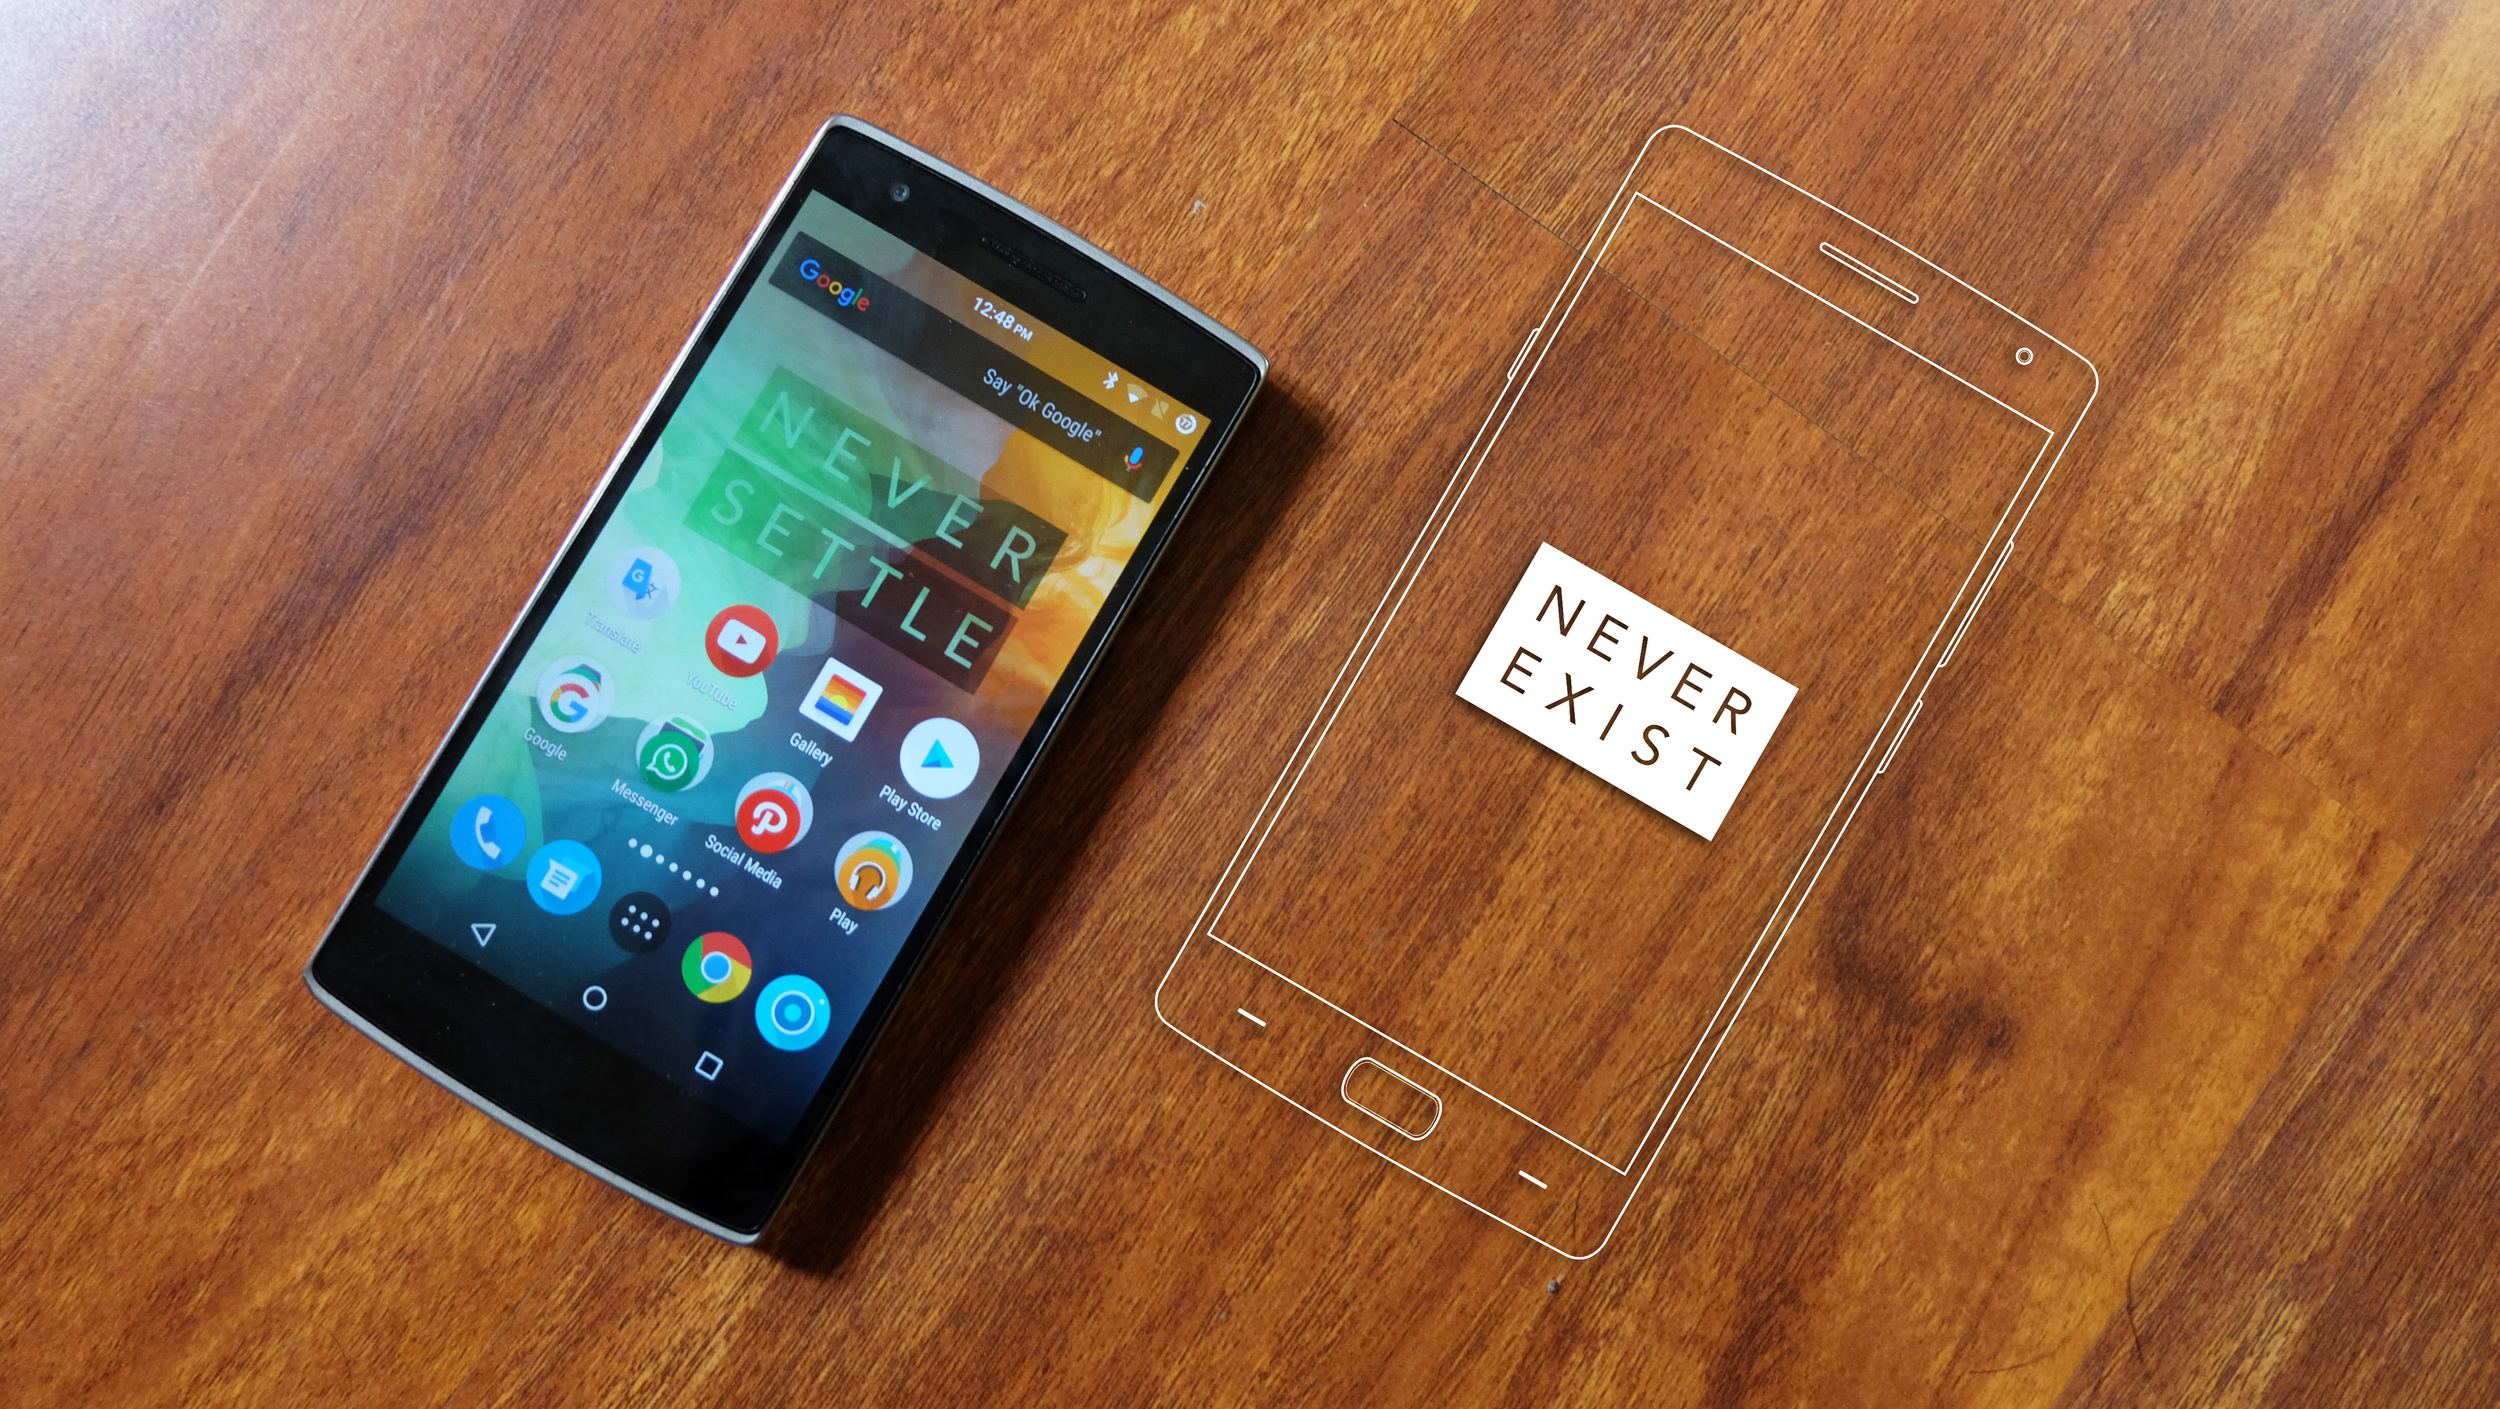 Comparison with oneplus One